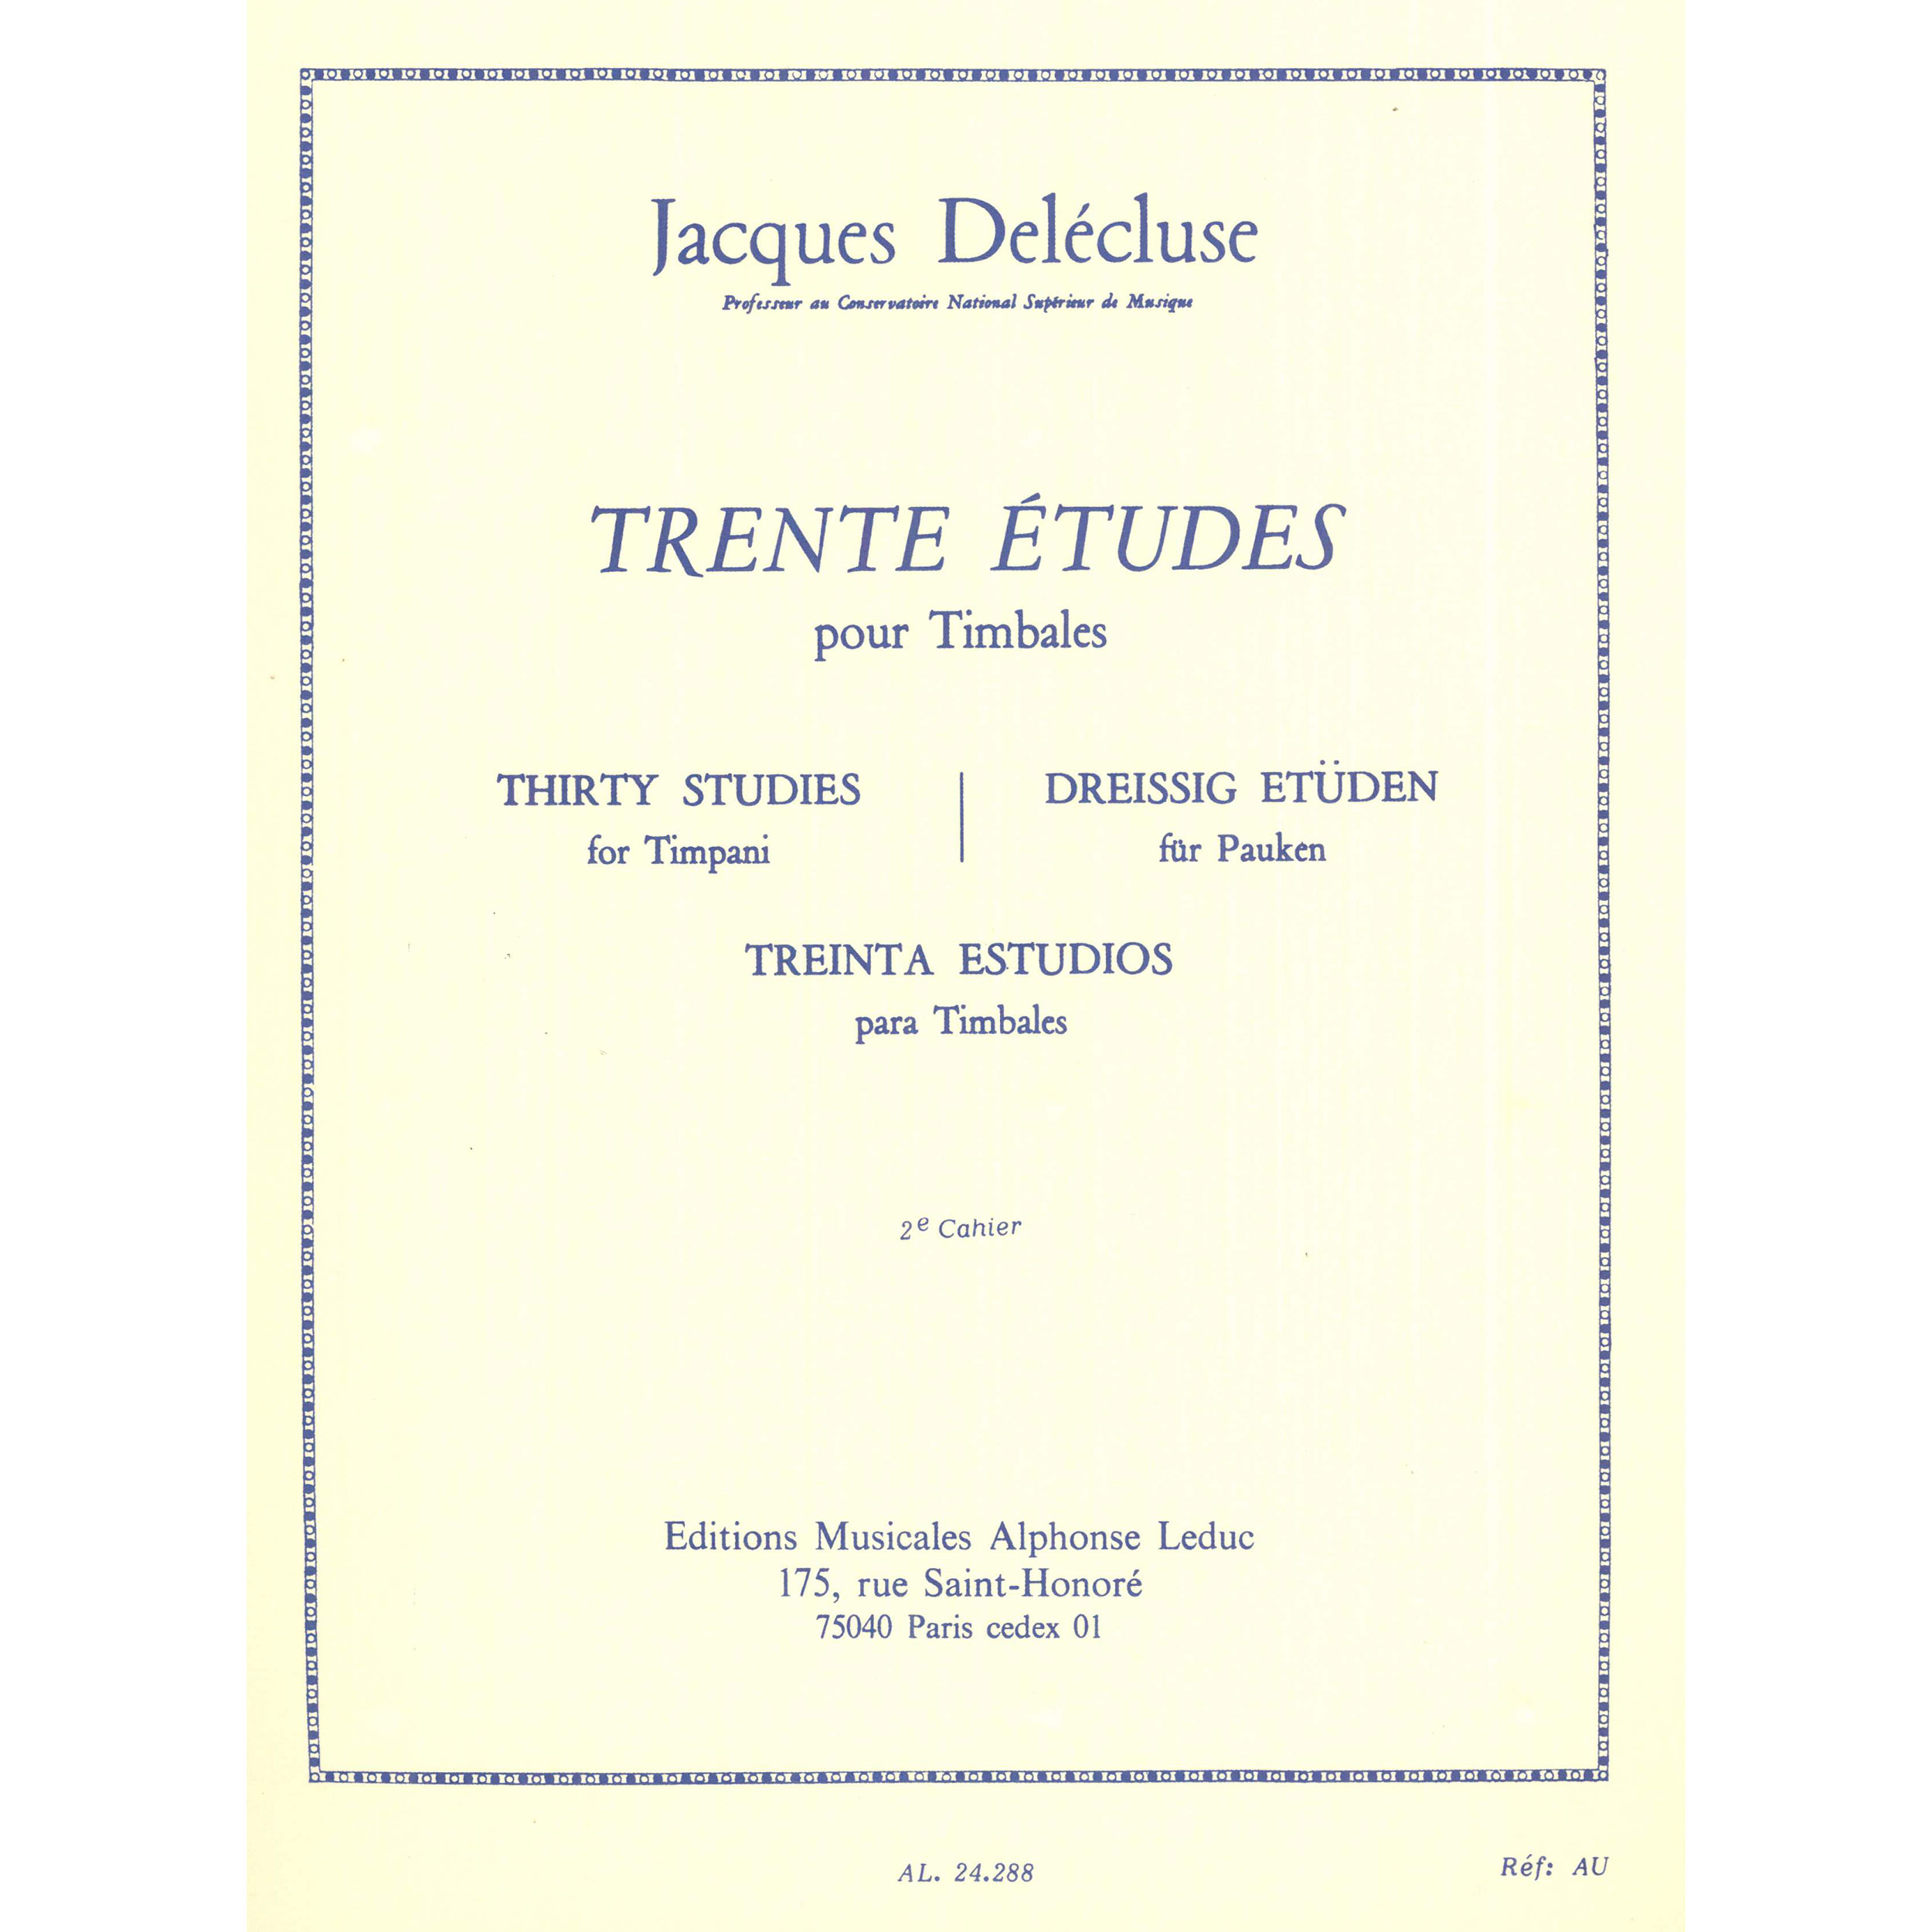 Trente Etudes pour Timbales (Thirty Etudes for Timpani) Book 2 by Jacques Delecluse